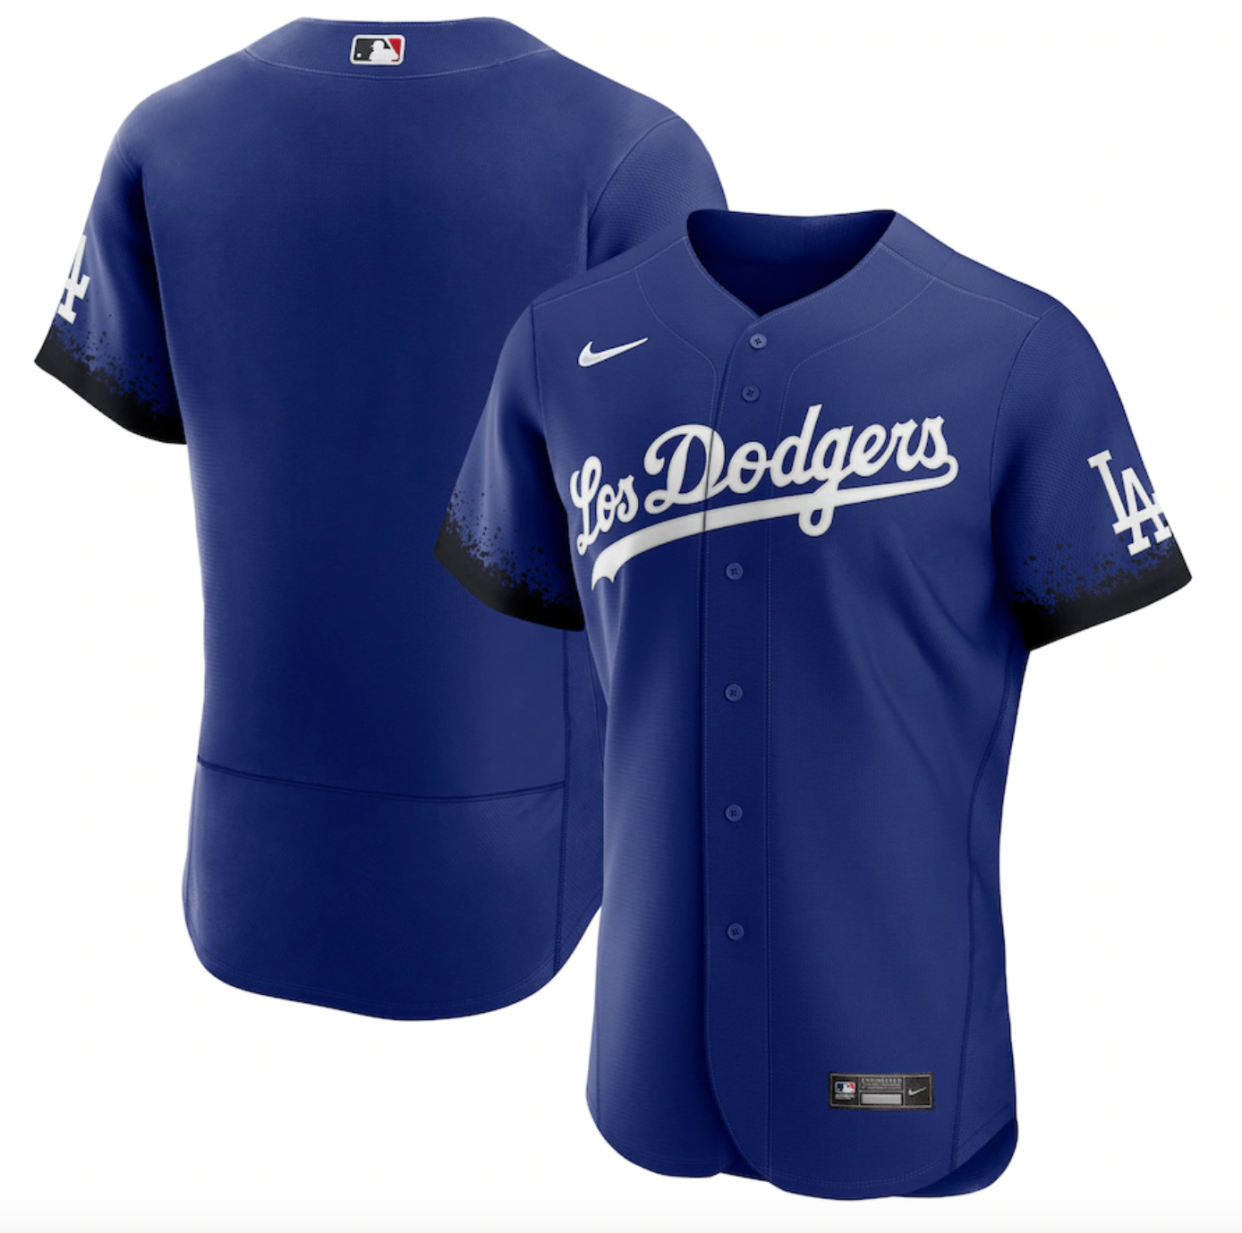 Dodgers Nike Royal 2021 City Connect Authentic Jersey